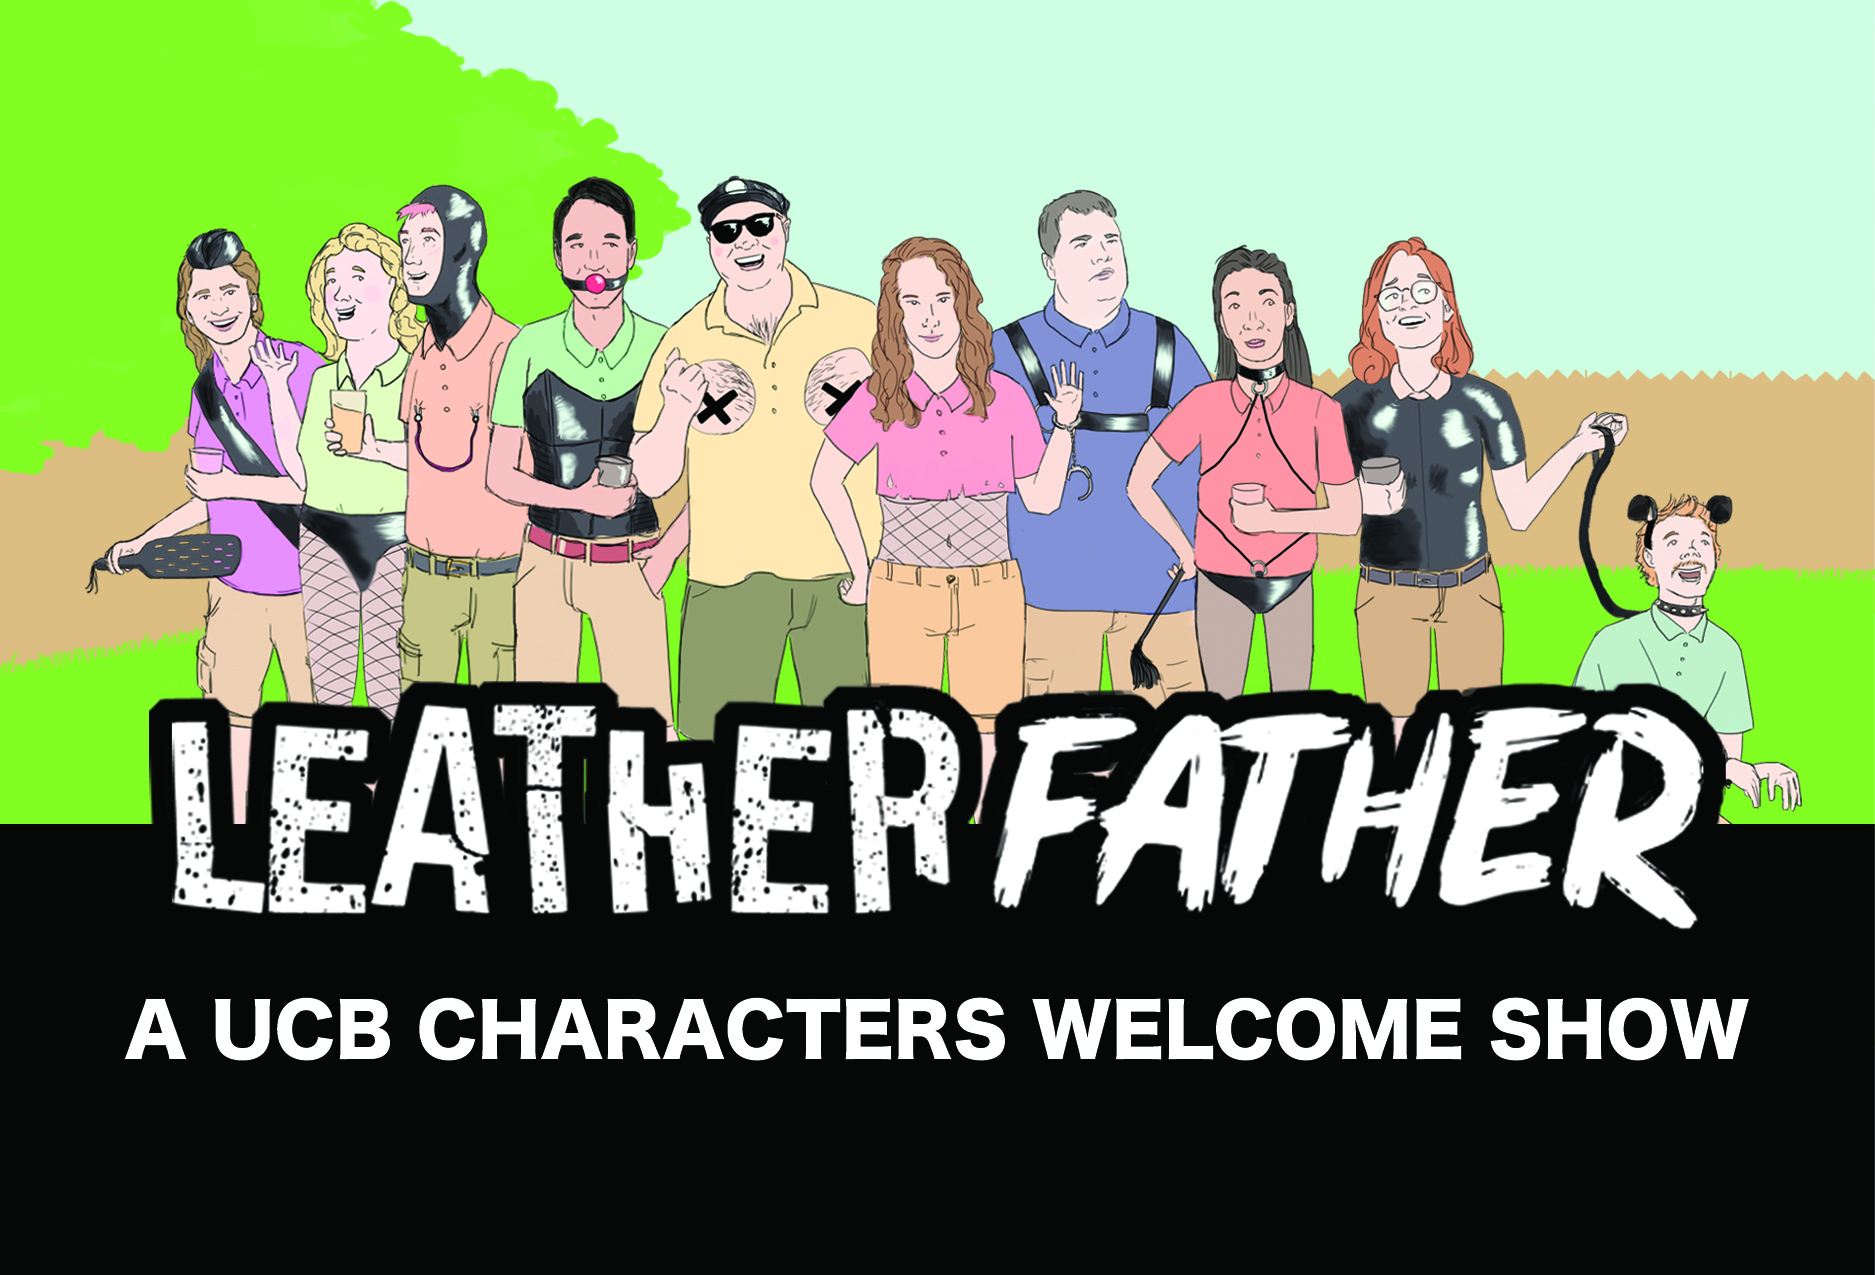 Leather Father_UCBPostcard_update_front.jpg